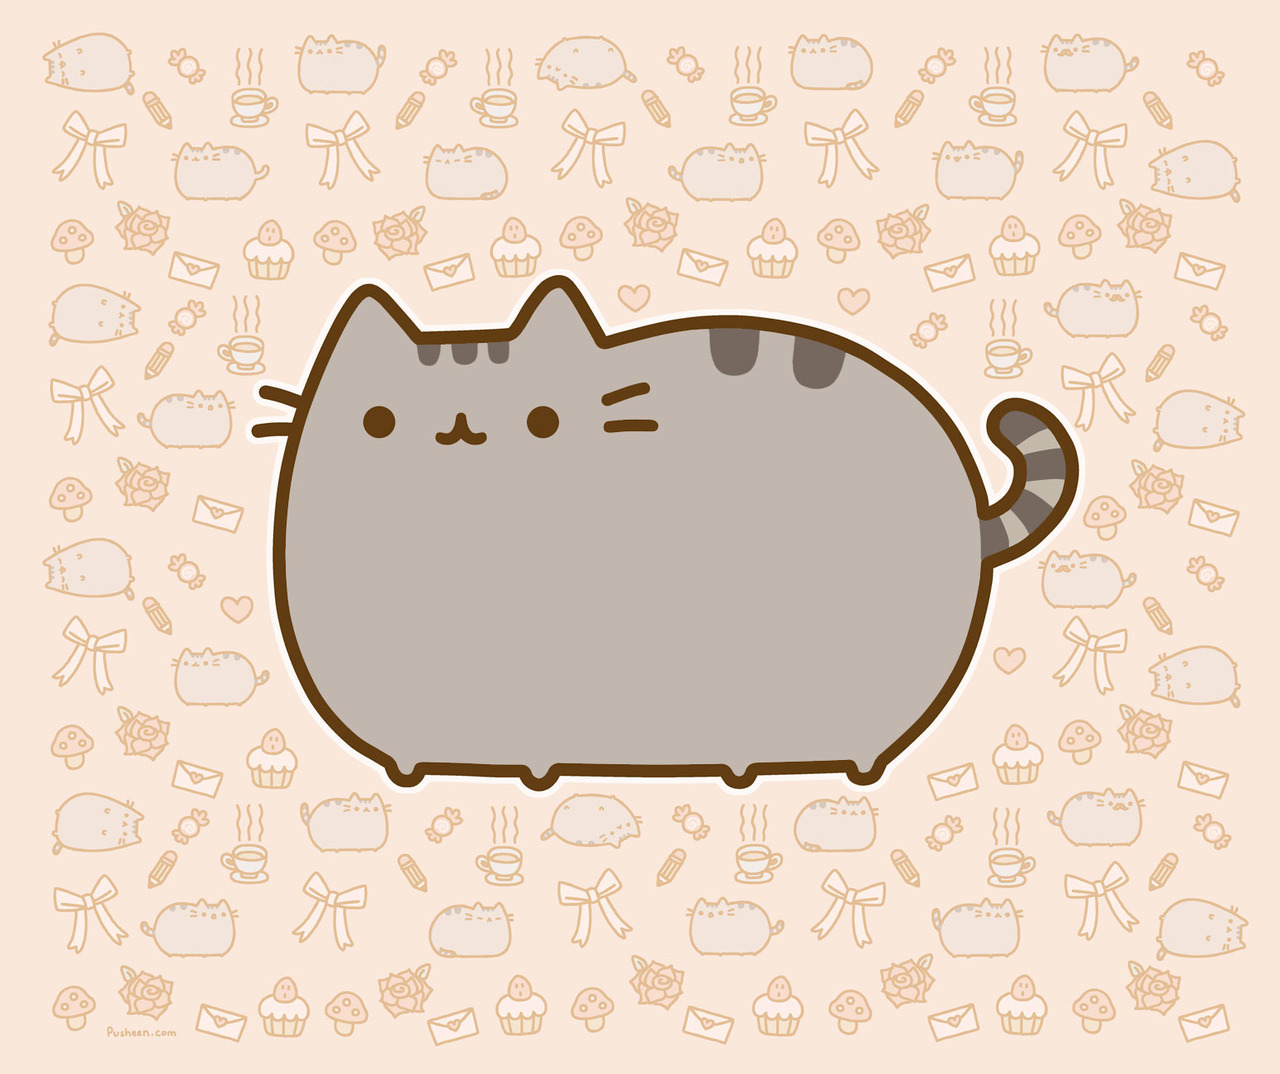 storyboard:  Pusheen the Cat Tells All Like most members of the feline family, Pusheen the Cat enjoys sitting on warm computers, long petting sessions, and many other quintessential feline activities. But she's not your typical tabby. Adopted from a shelter in her youth (hence the name, based upon the Irish word for kitten, puisín), Pusheen has since grown into one of Tumblr's furry sensations.  Her human-like snacking abilities, love of dress-up, and abnormally adorable on-screen bop have garnered hundreds of thousands of fans. She already has a line of merchandiseand just signed a book deal. And yet, despite all this fame, Pusheen remains her modest, friendly, yarn-loving self. How does she stay so grounded, amidst all the adulation? Pusheen answers, in typical fashion. Read More